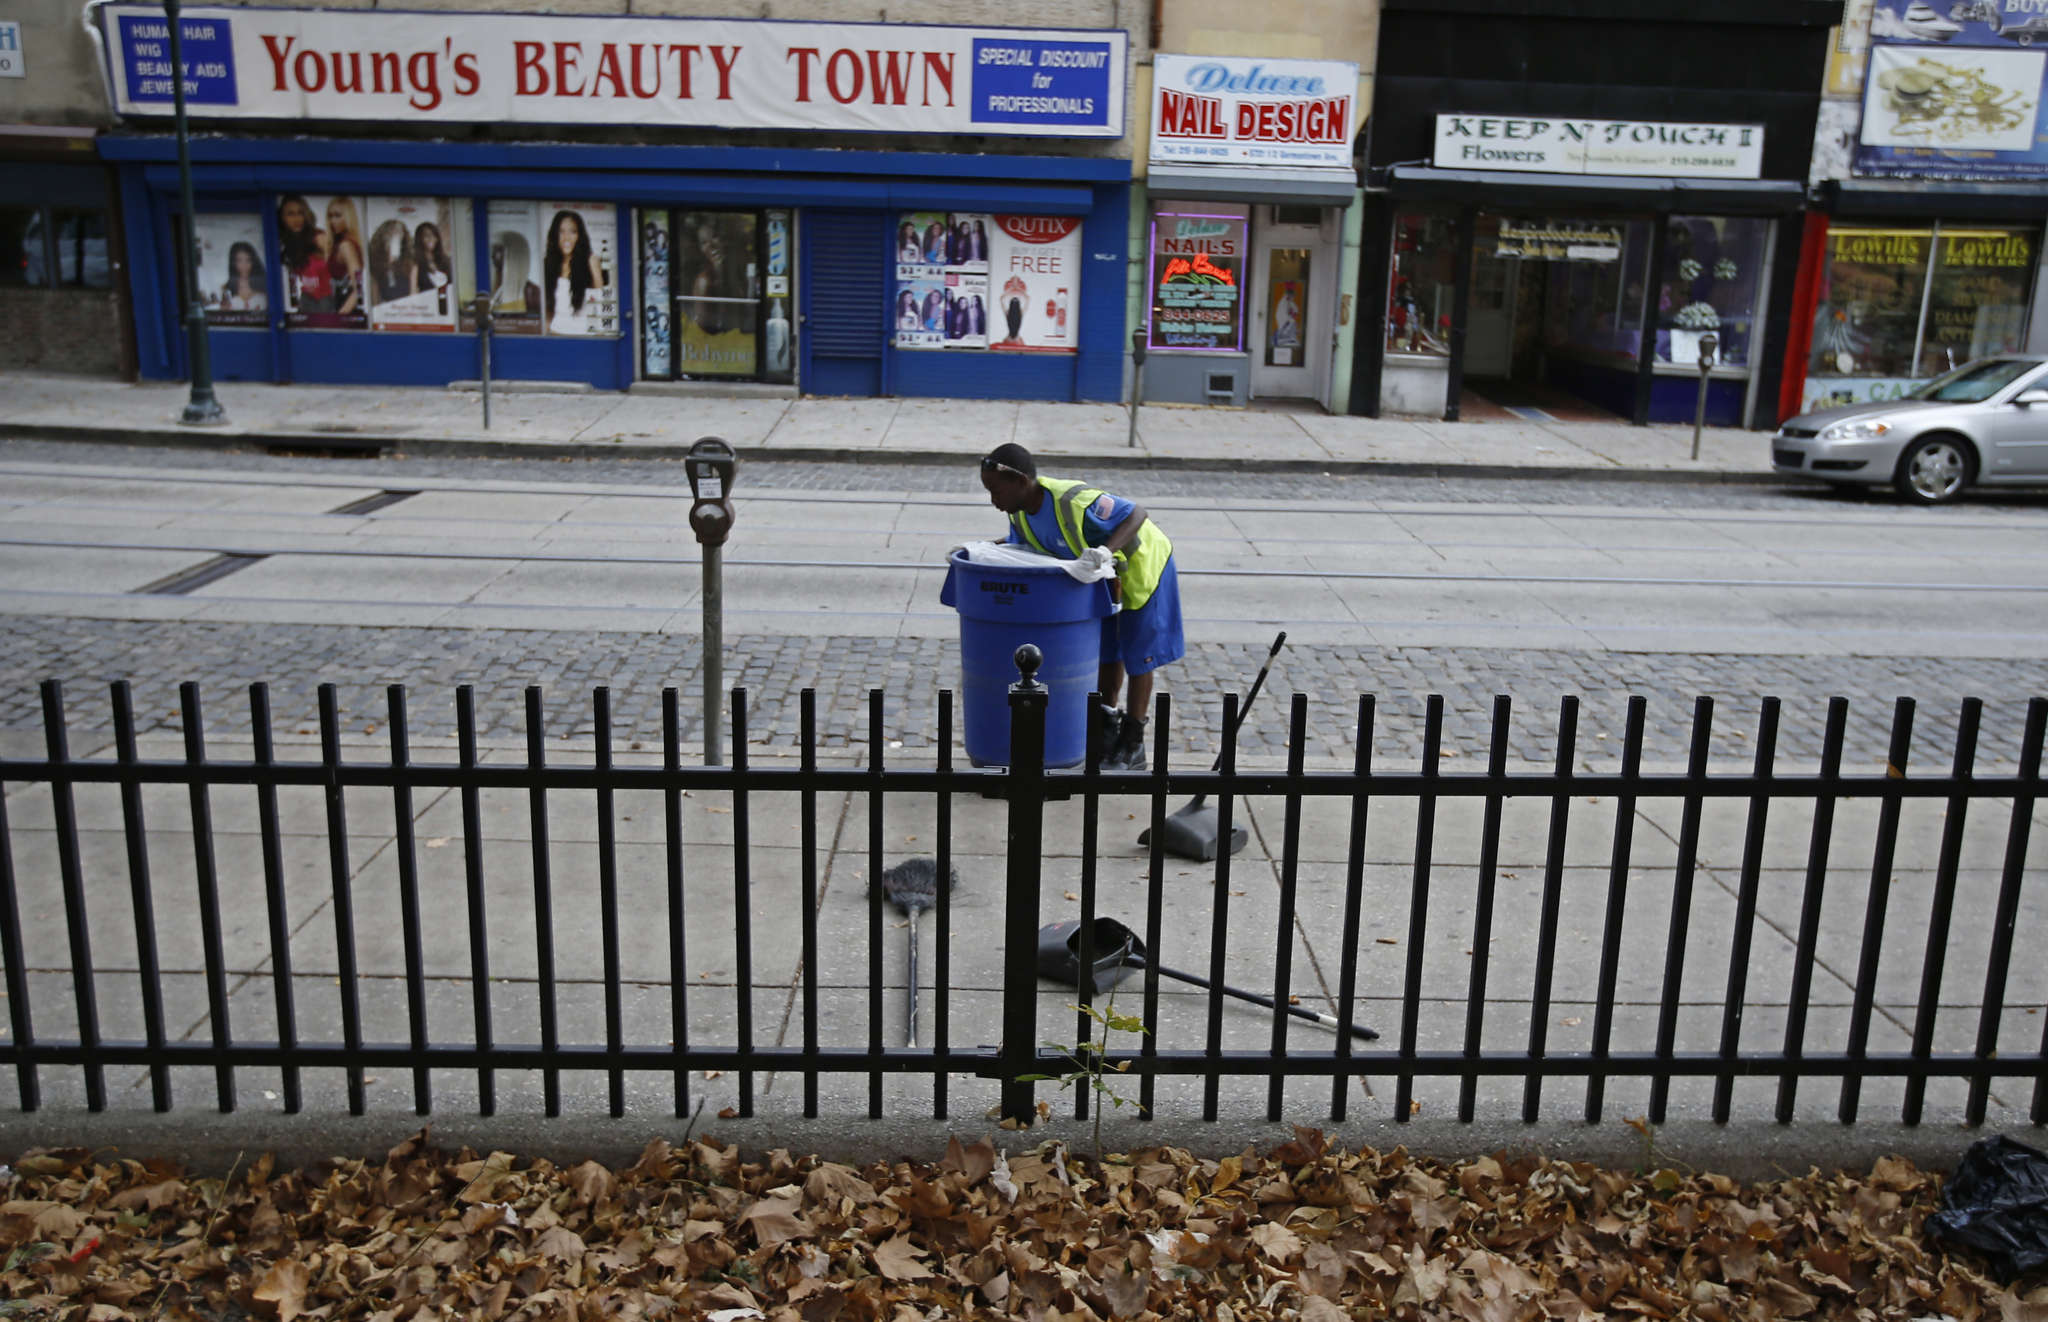 A worker cleans the sidewalk on Germantown Avenue outside Vernon Park. The city invested $1.2 million in cleaning up the seedy park, but the nearby shopping district has yet to develop.